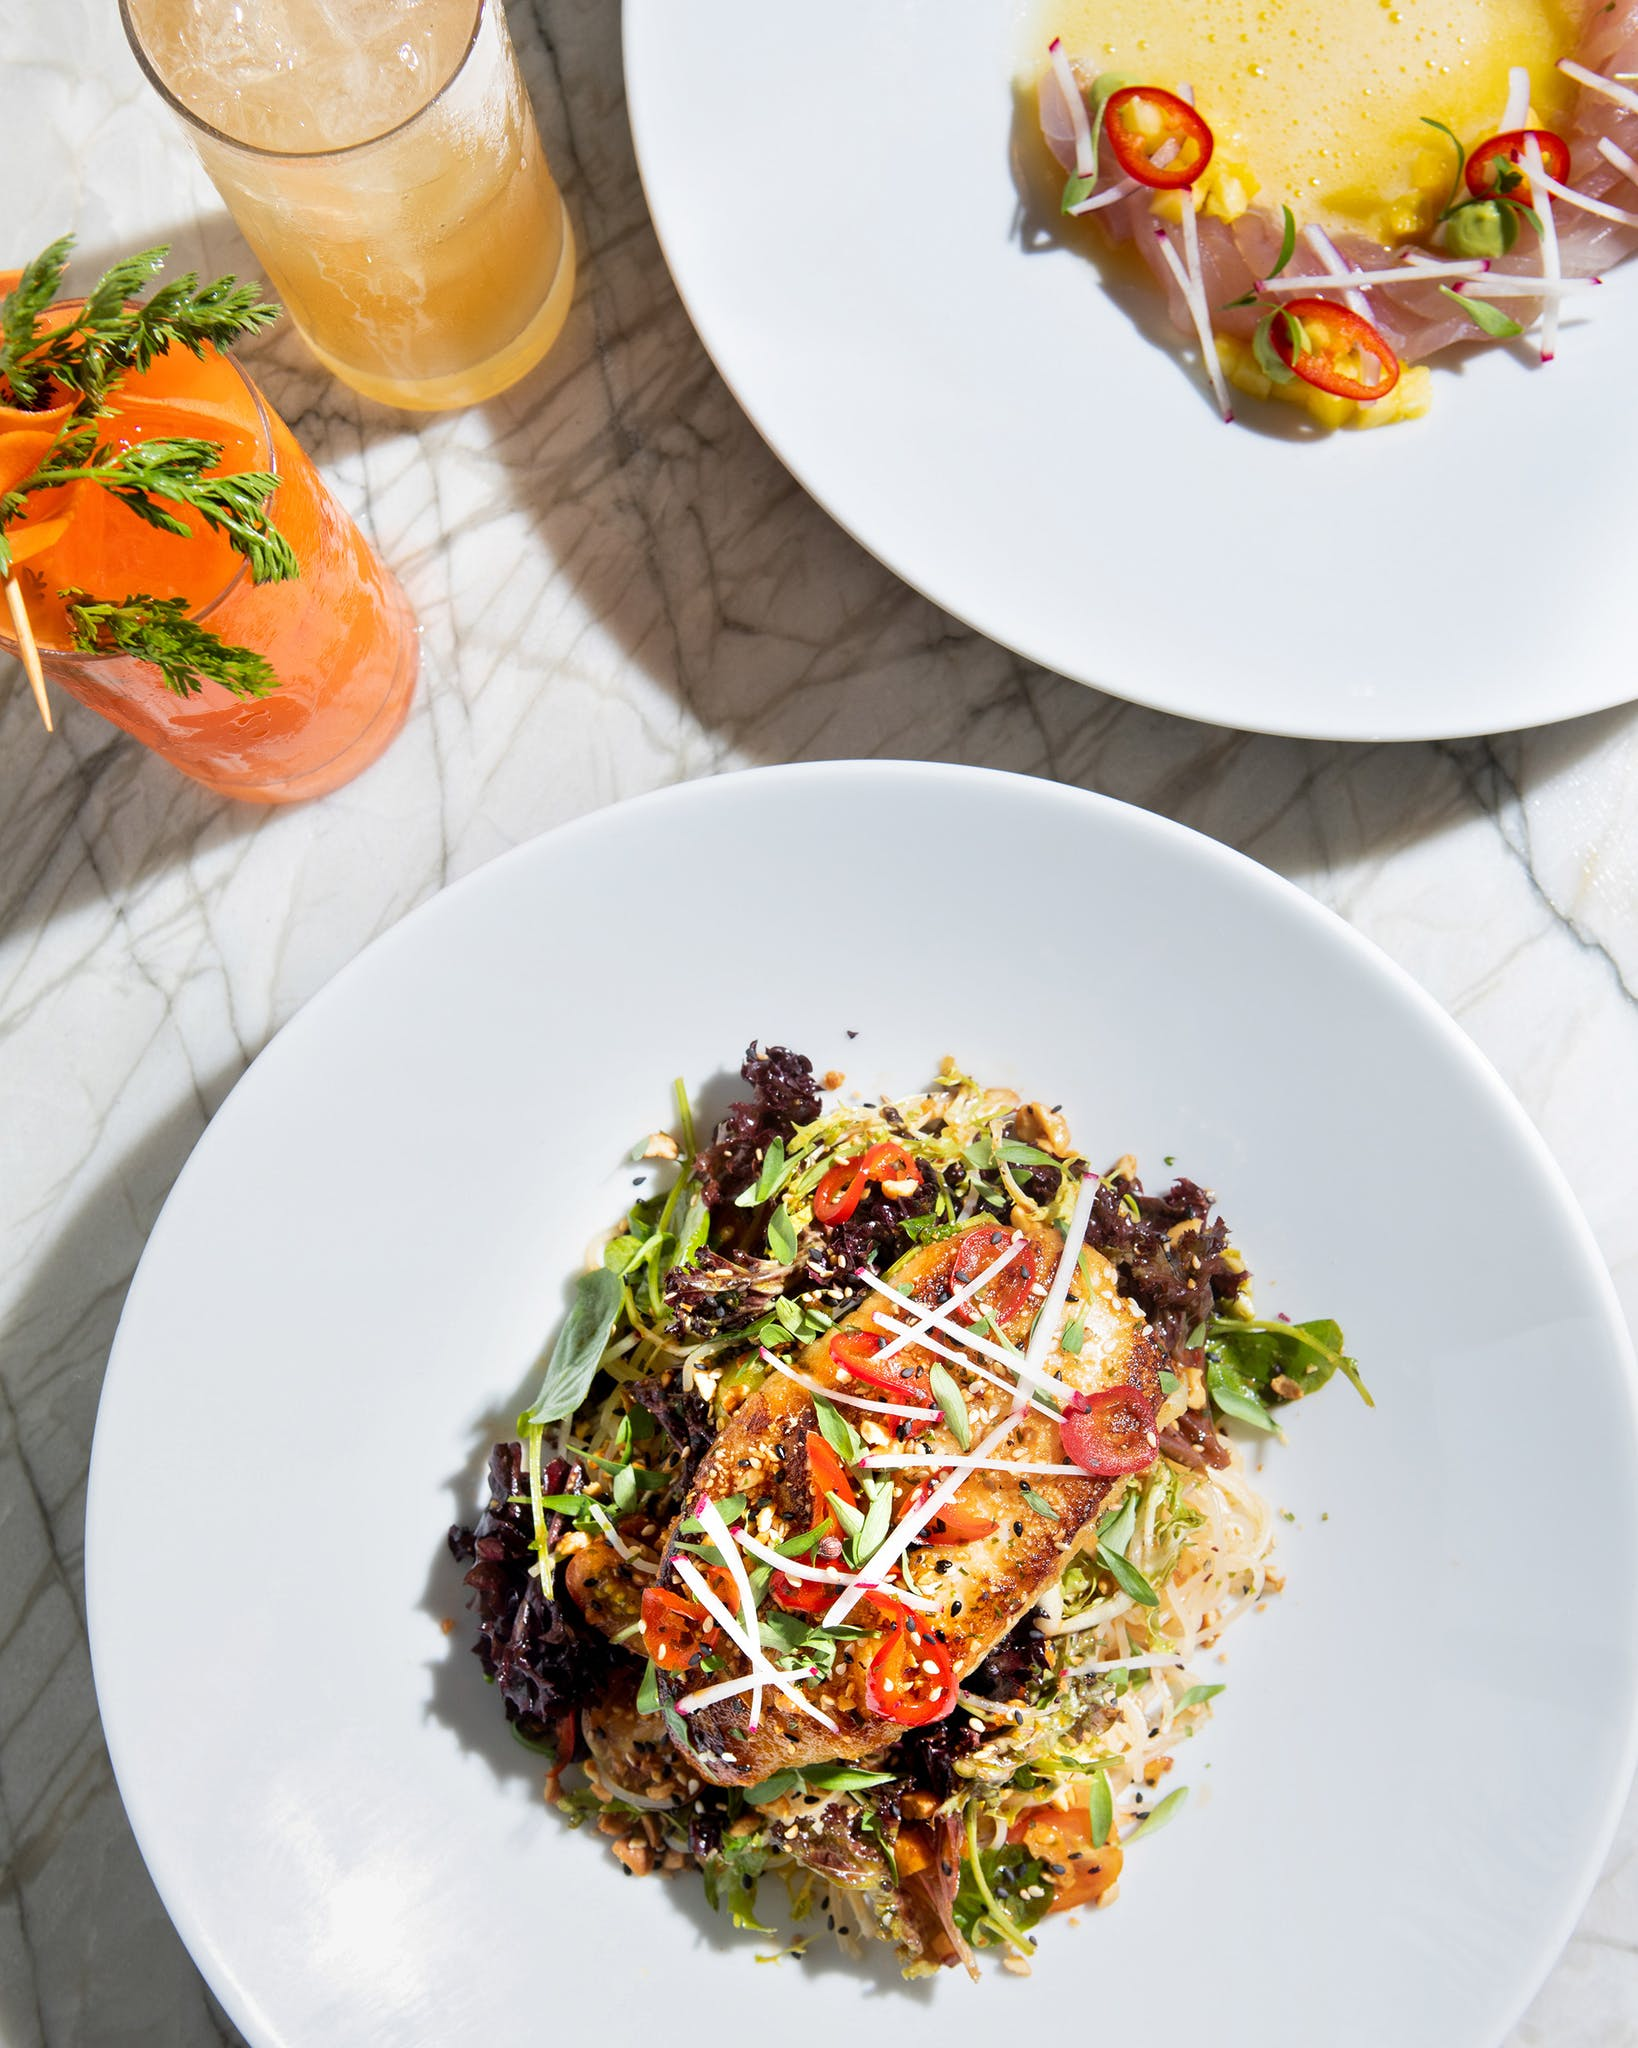 At Tonight & Tomorrow, the new restaurant helmed by chef and native Texan Jonathan Wicks, plates are as pleasing to the eye as they are to the palette.